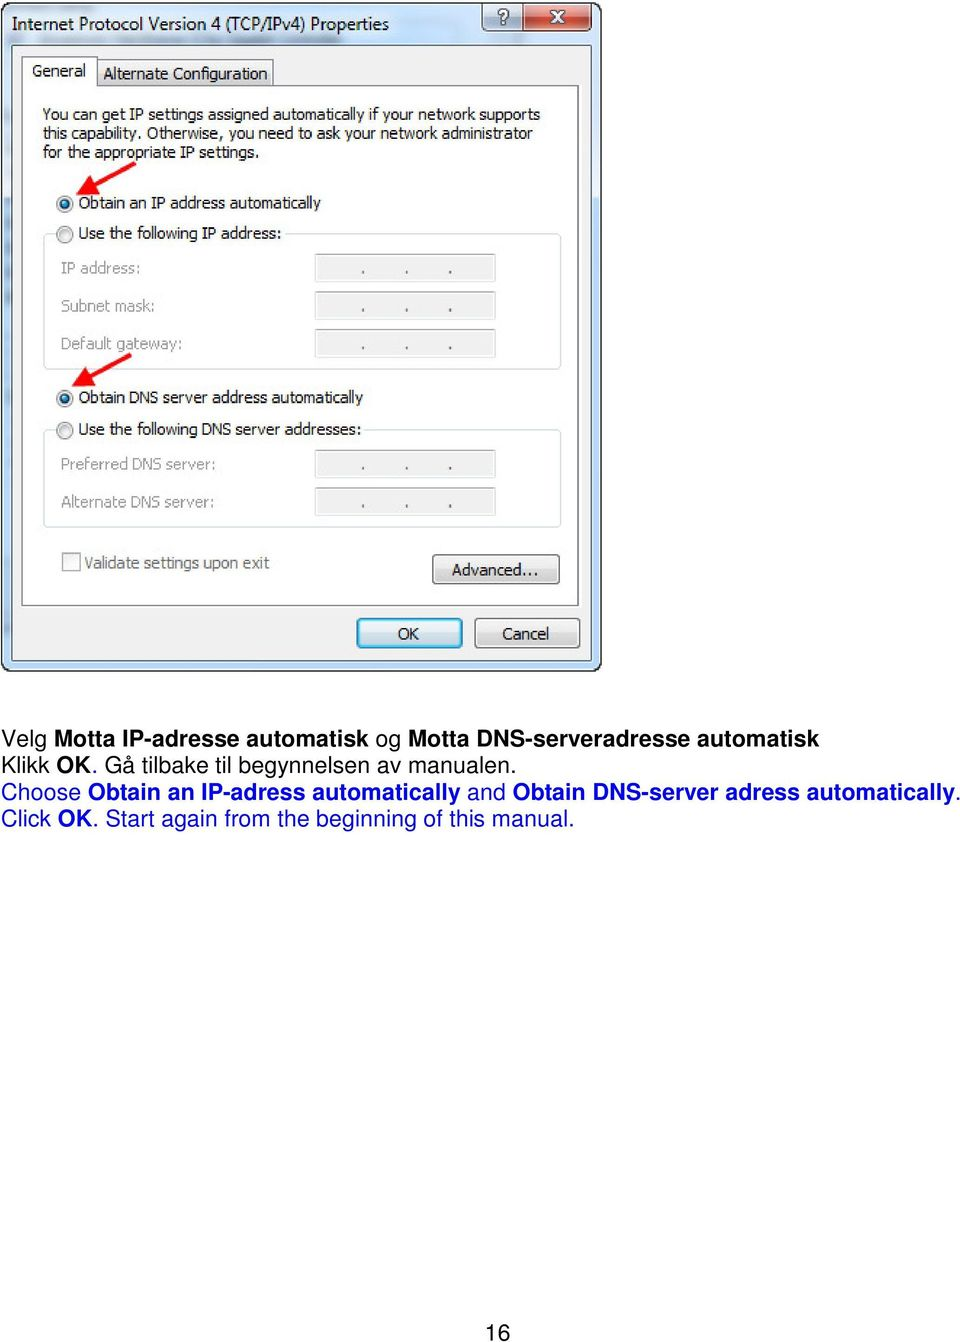 Choose Obtain an IP-adress automatically and Obtain DNS-server